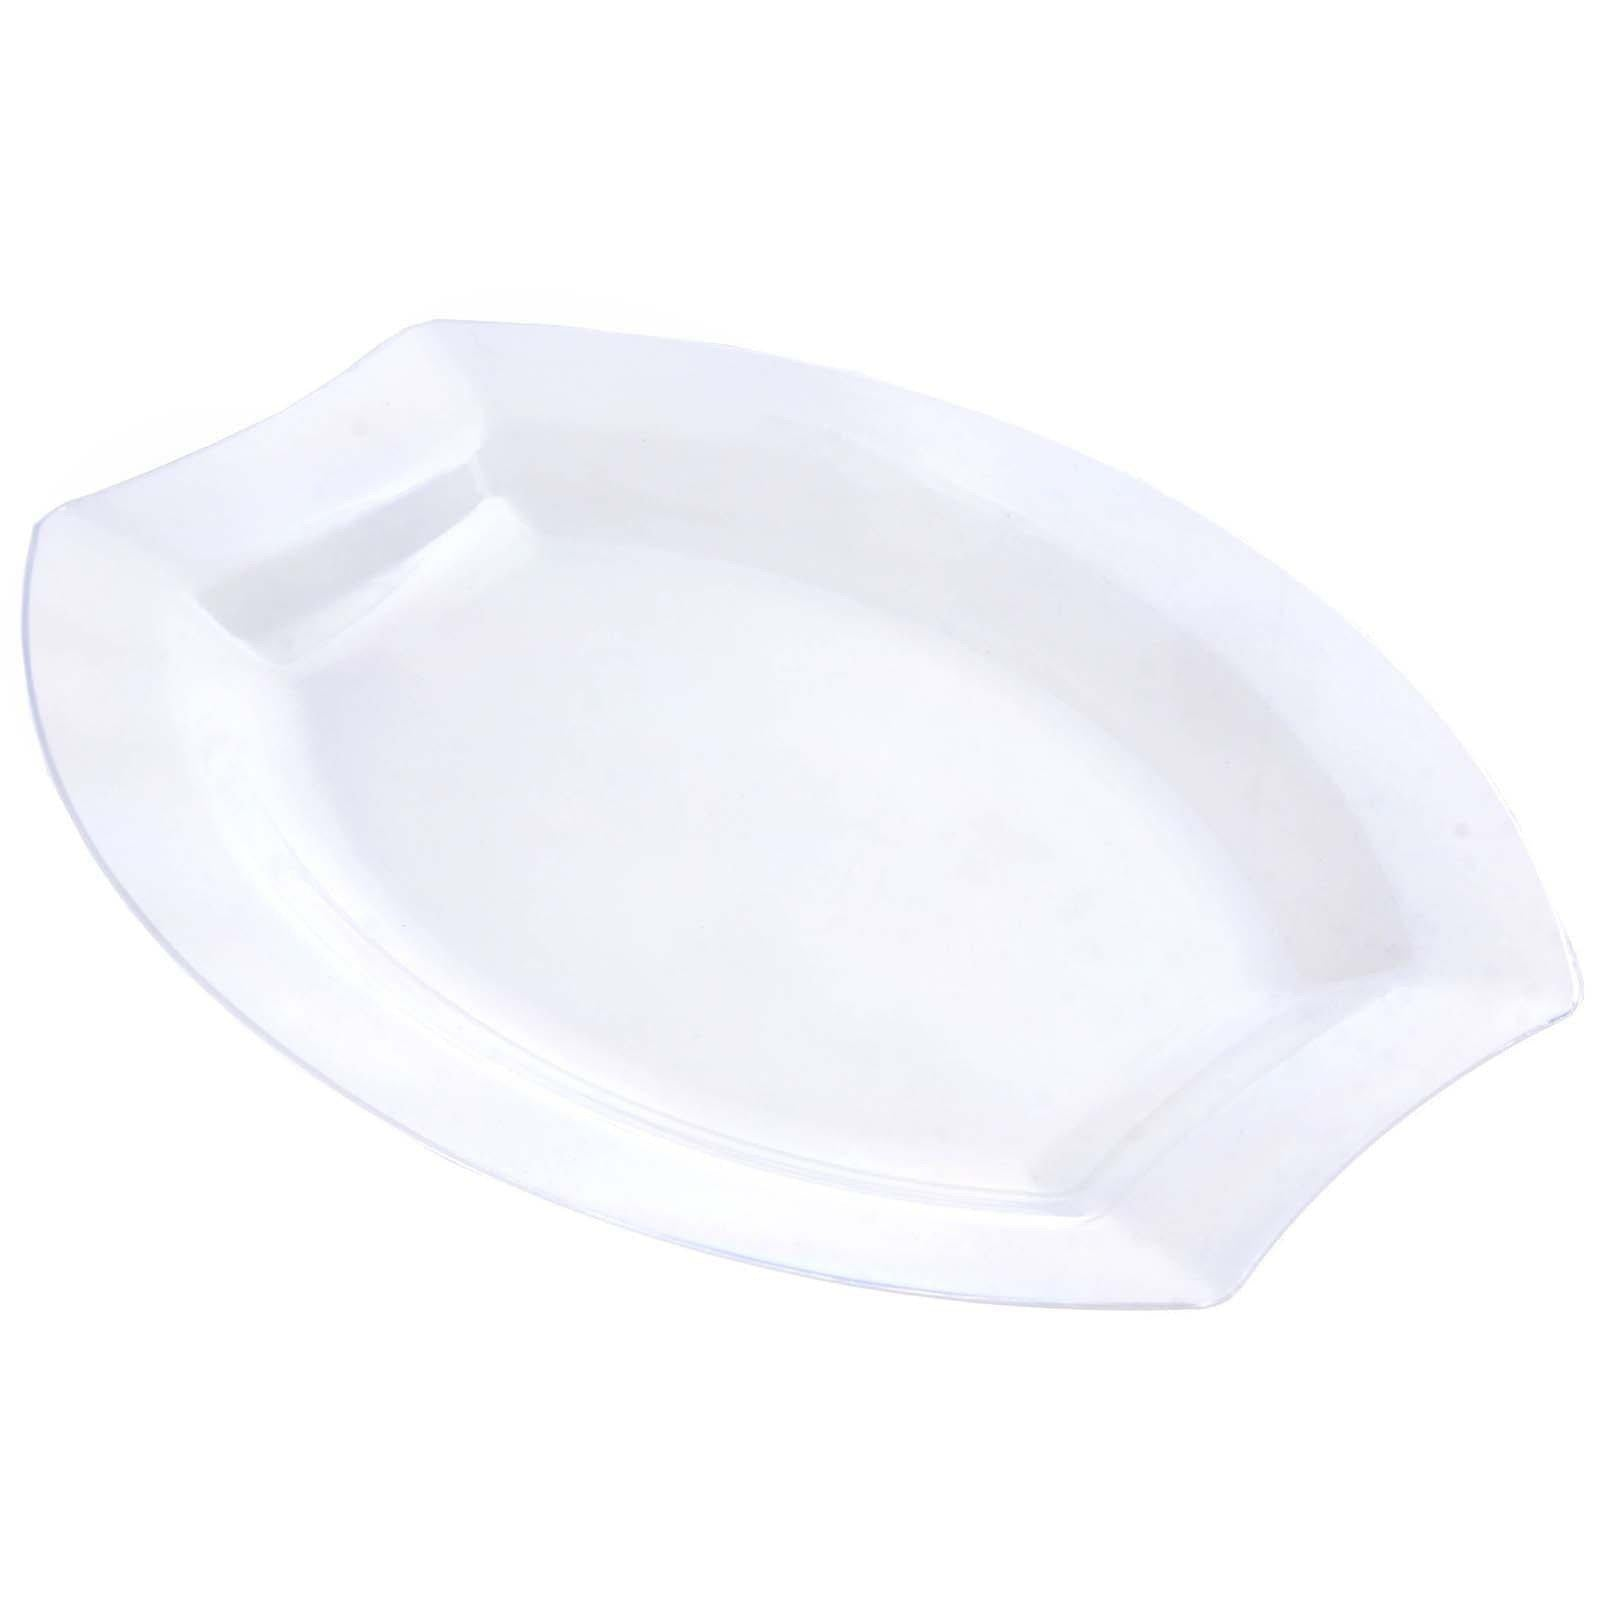 10 Pack - Clear 10.5  Crescent Oval Shaped Disposable Plate - Chambury Plastics ...  sc 1 st  Tablecloths Factory & 10 Pack 11